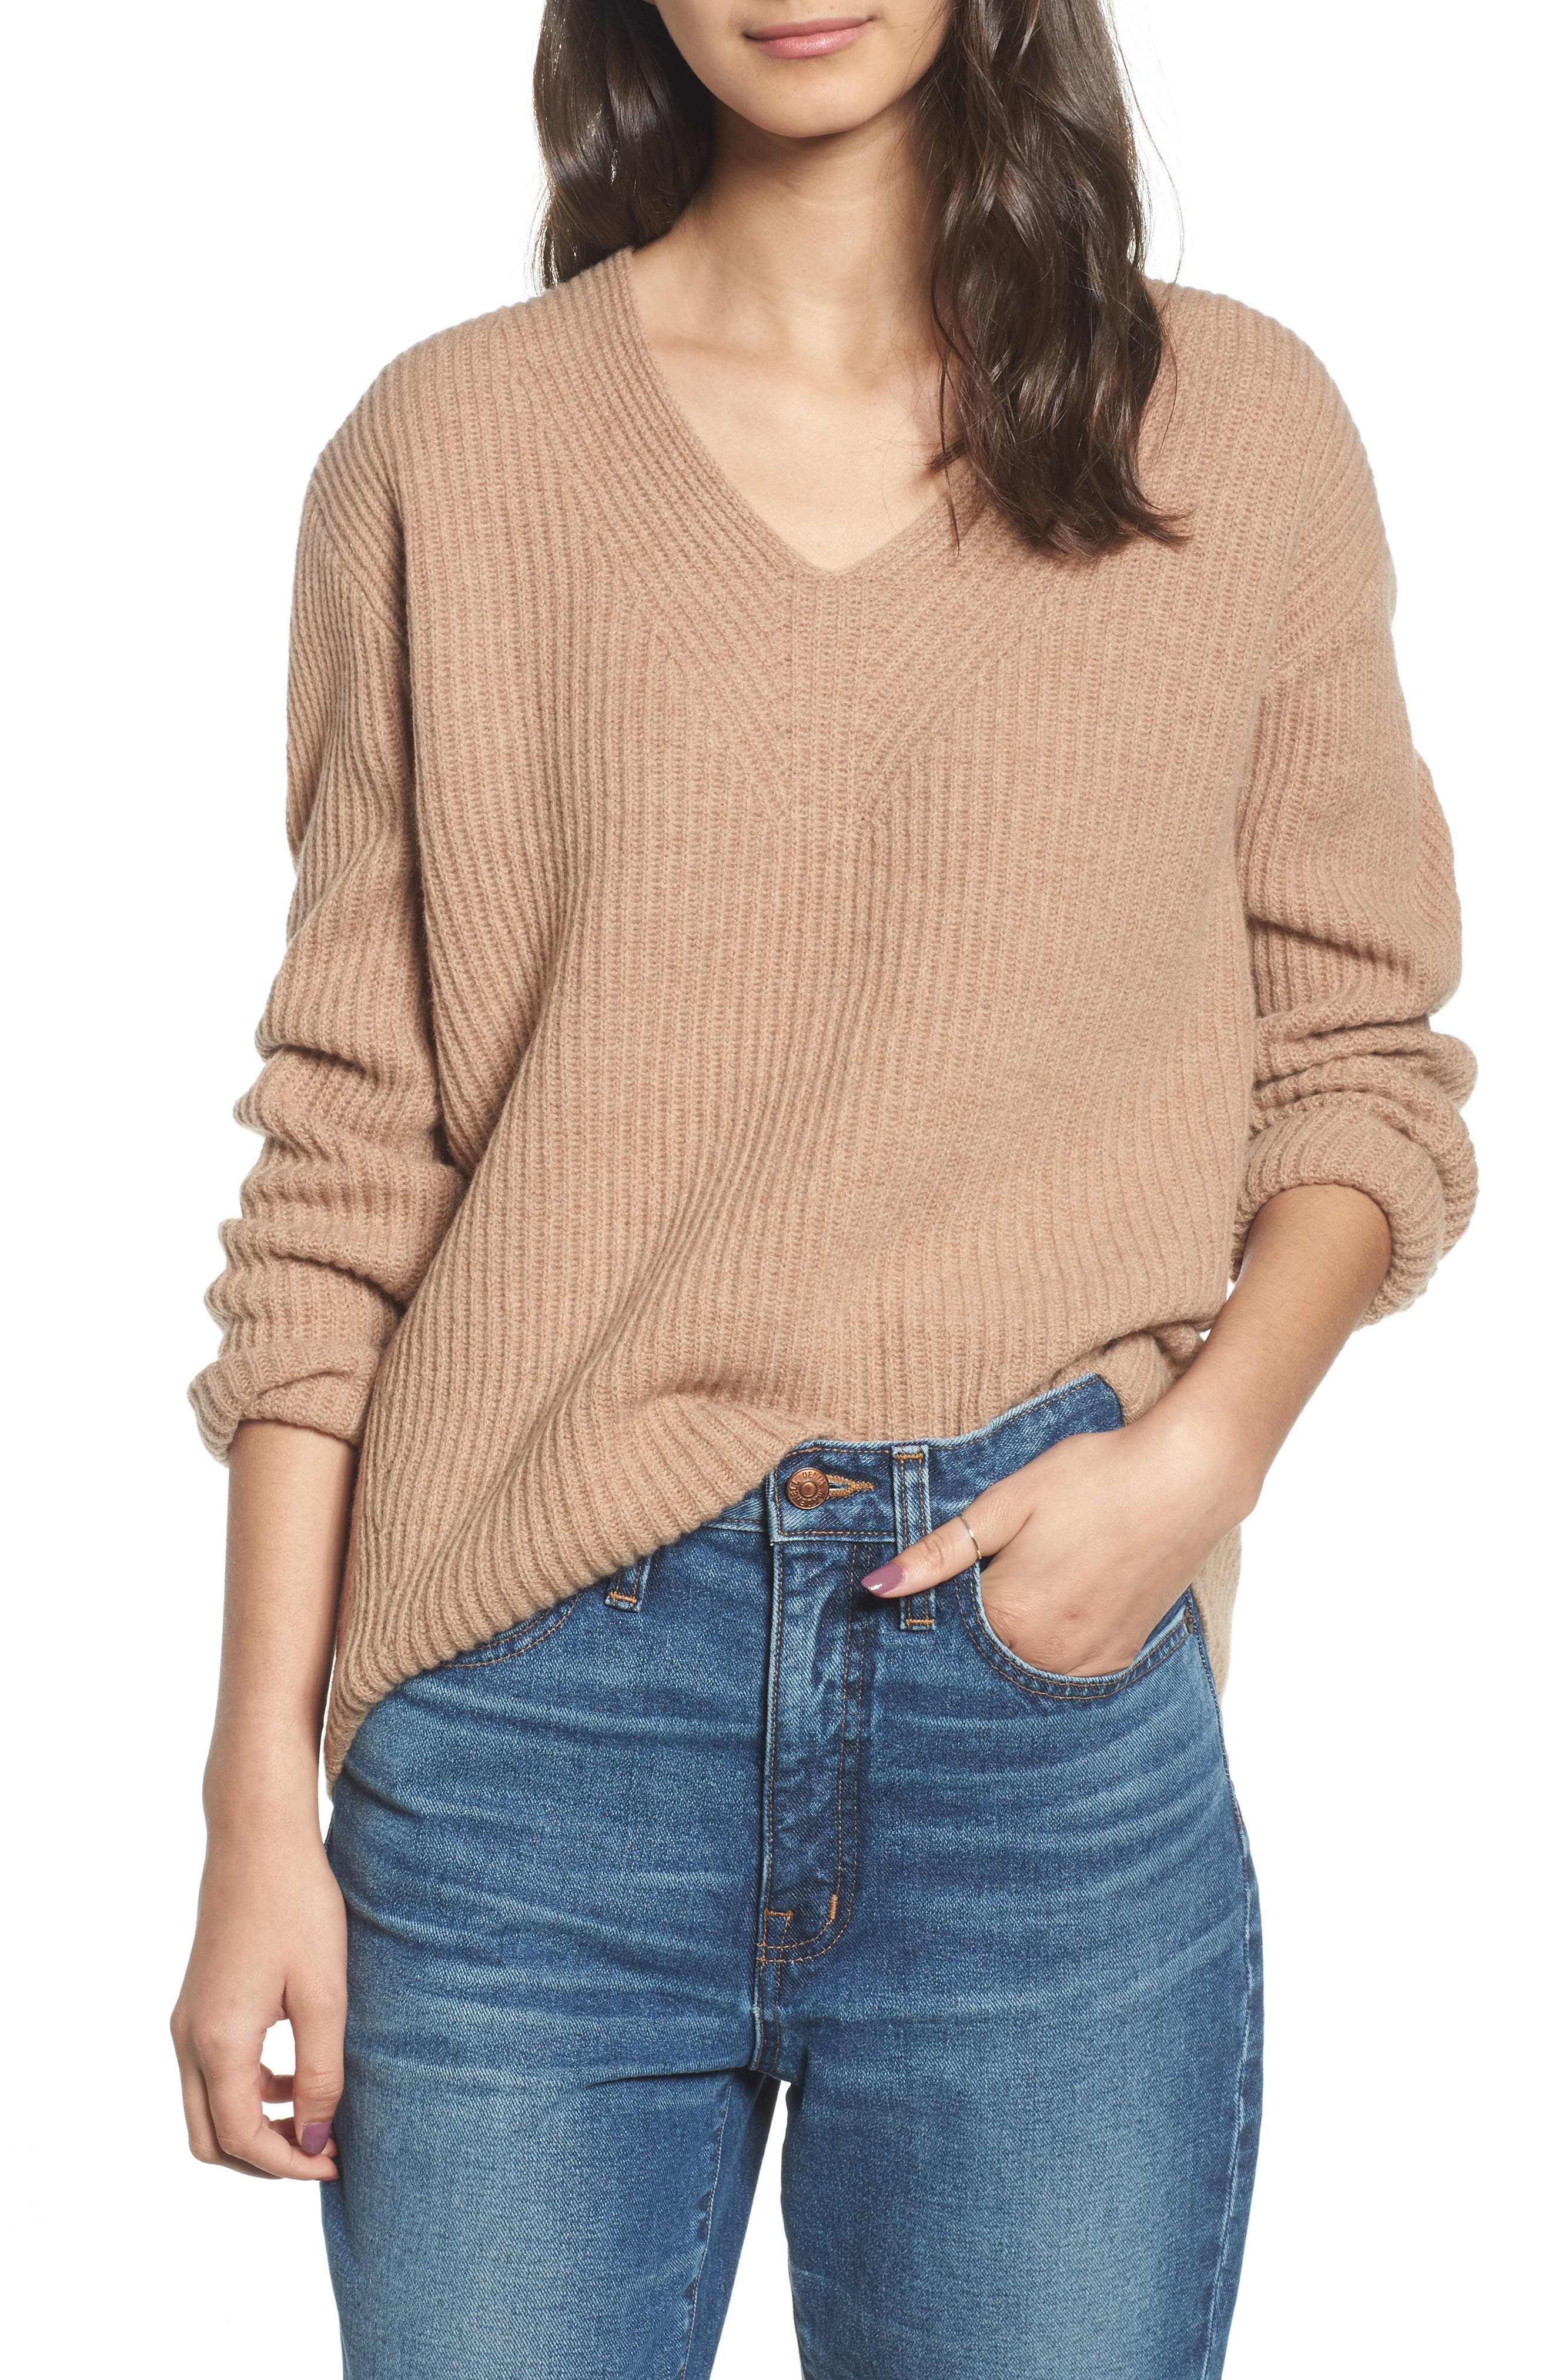 Woodside Pullover Sweater,                             Main thumbnail 2, color,